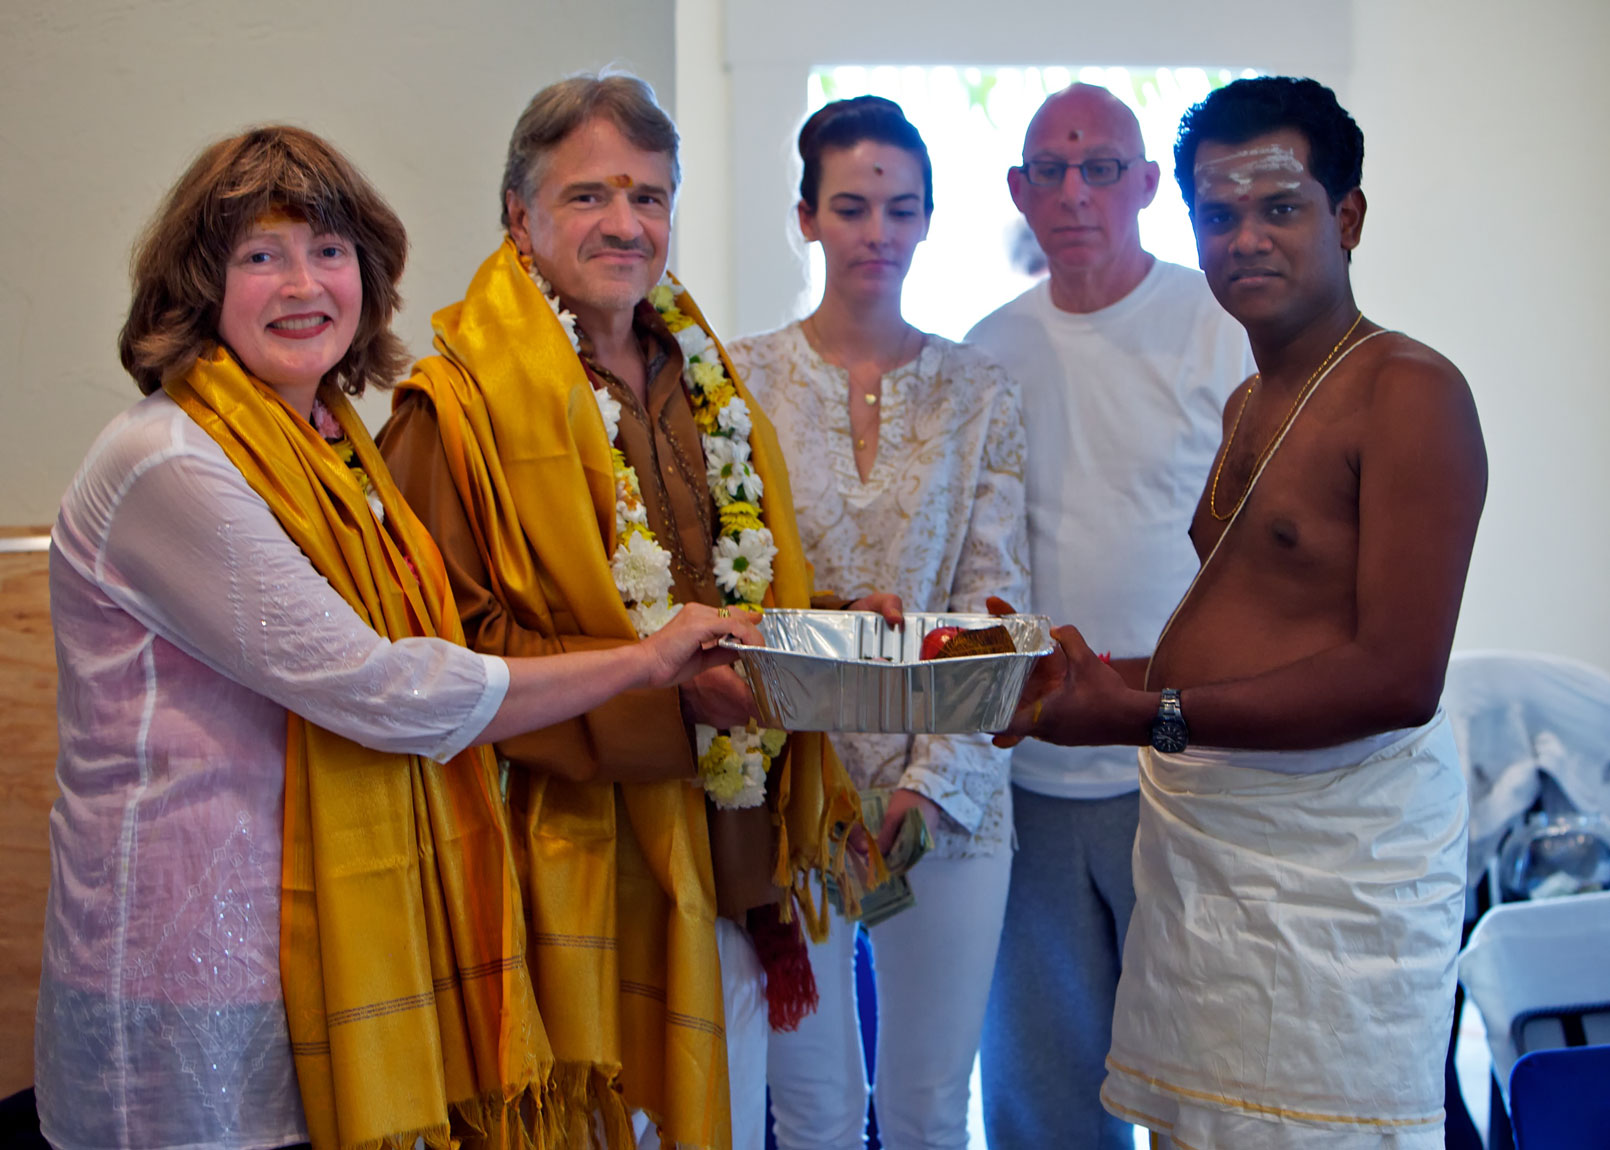 Sthapati SK accepts dakshina offered in gratitude.